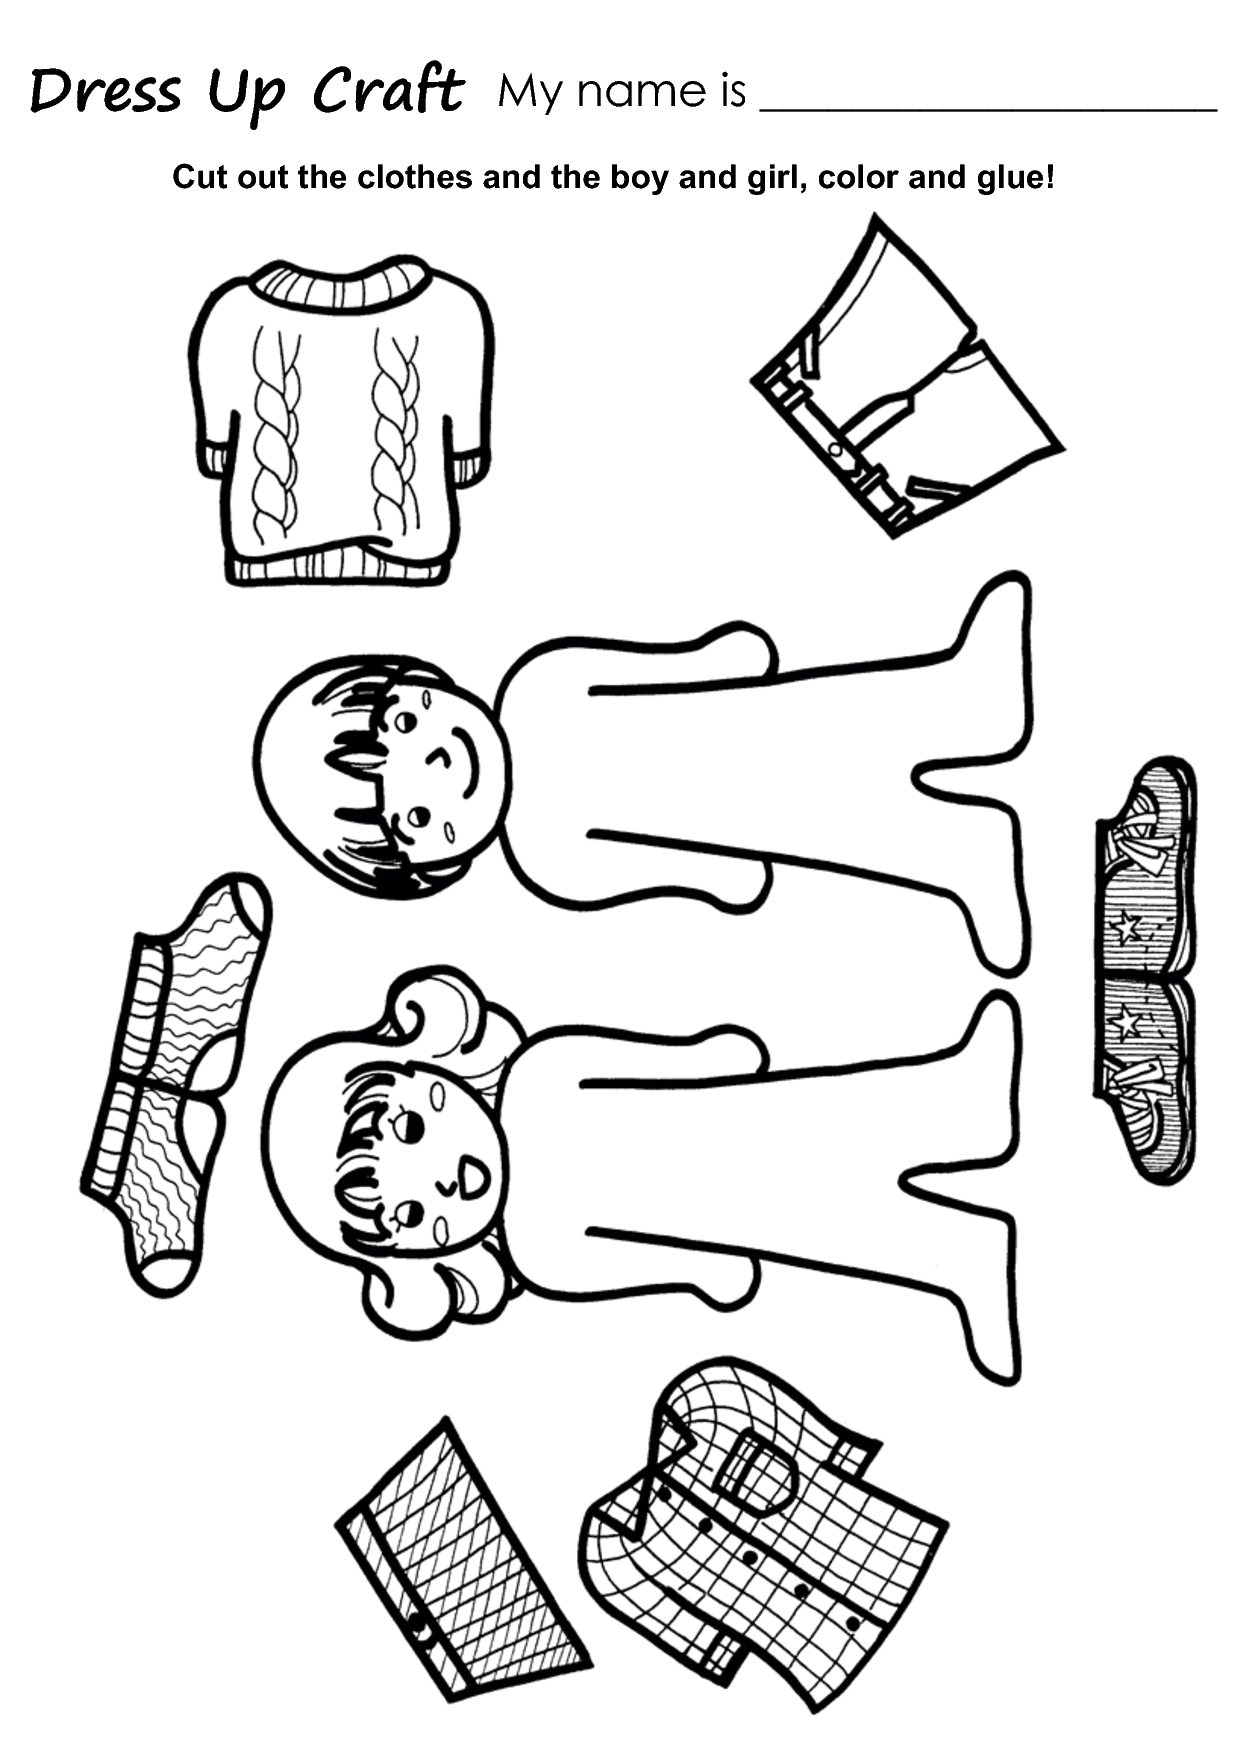 girl template cut out the clothes and the boy and girl color